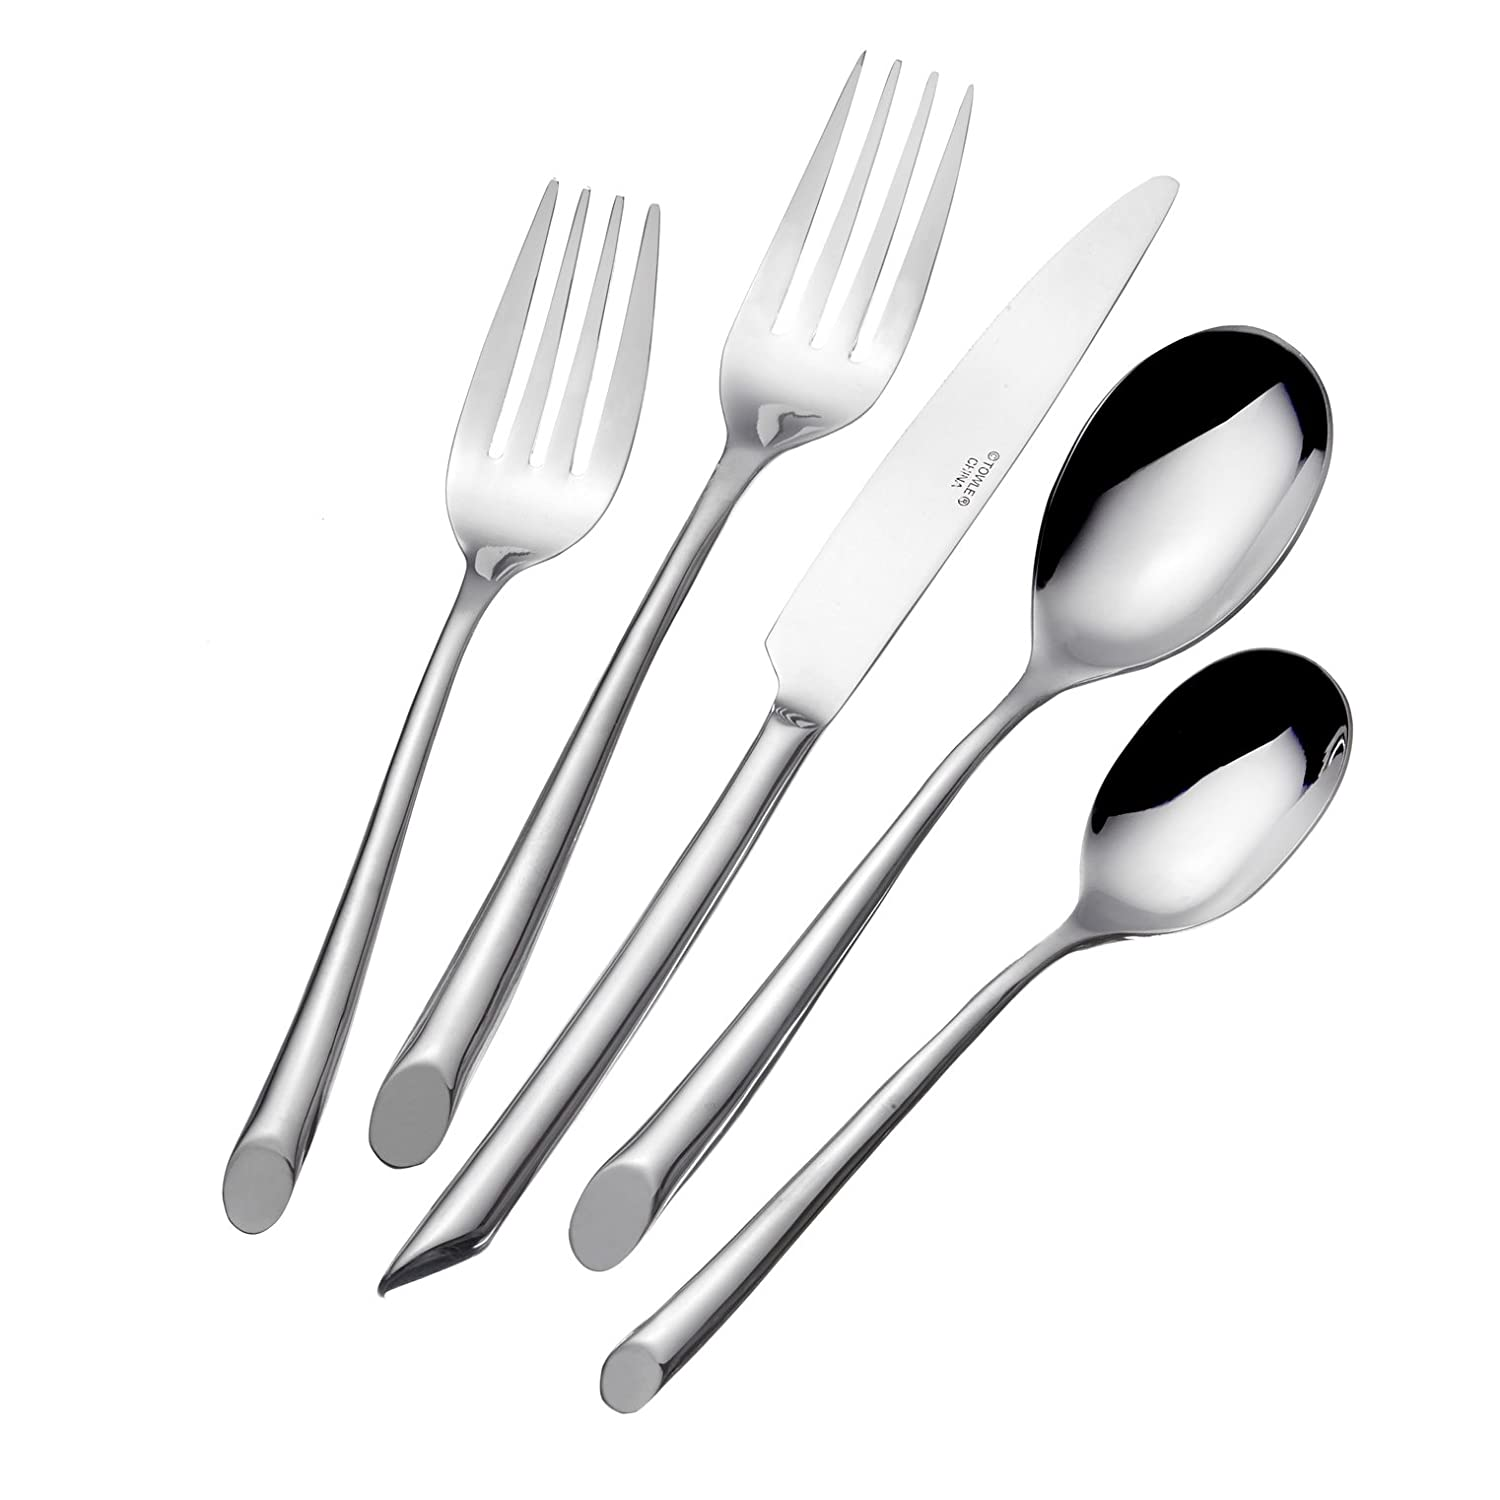 Towle Living Wave 42-Piece Place Setting, Service for 8 5005925